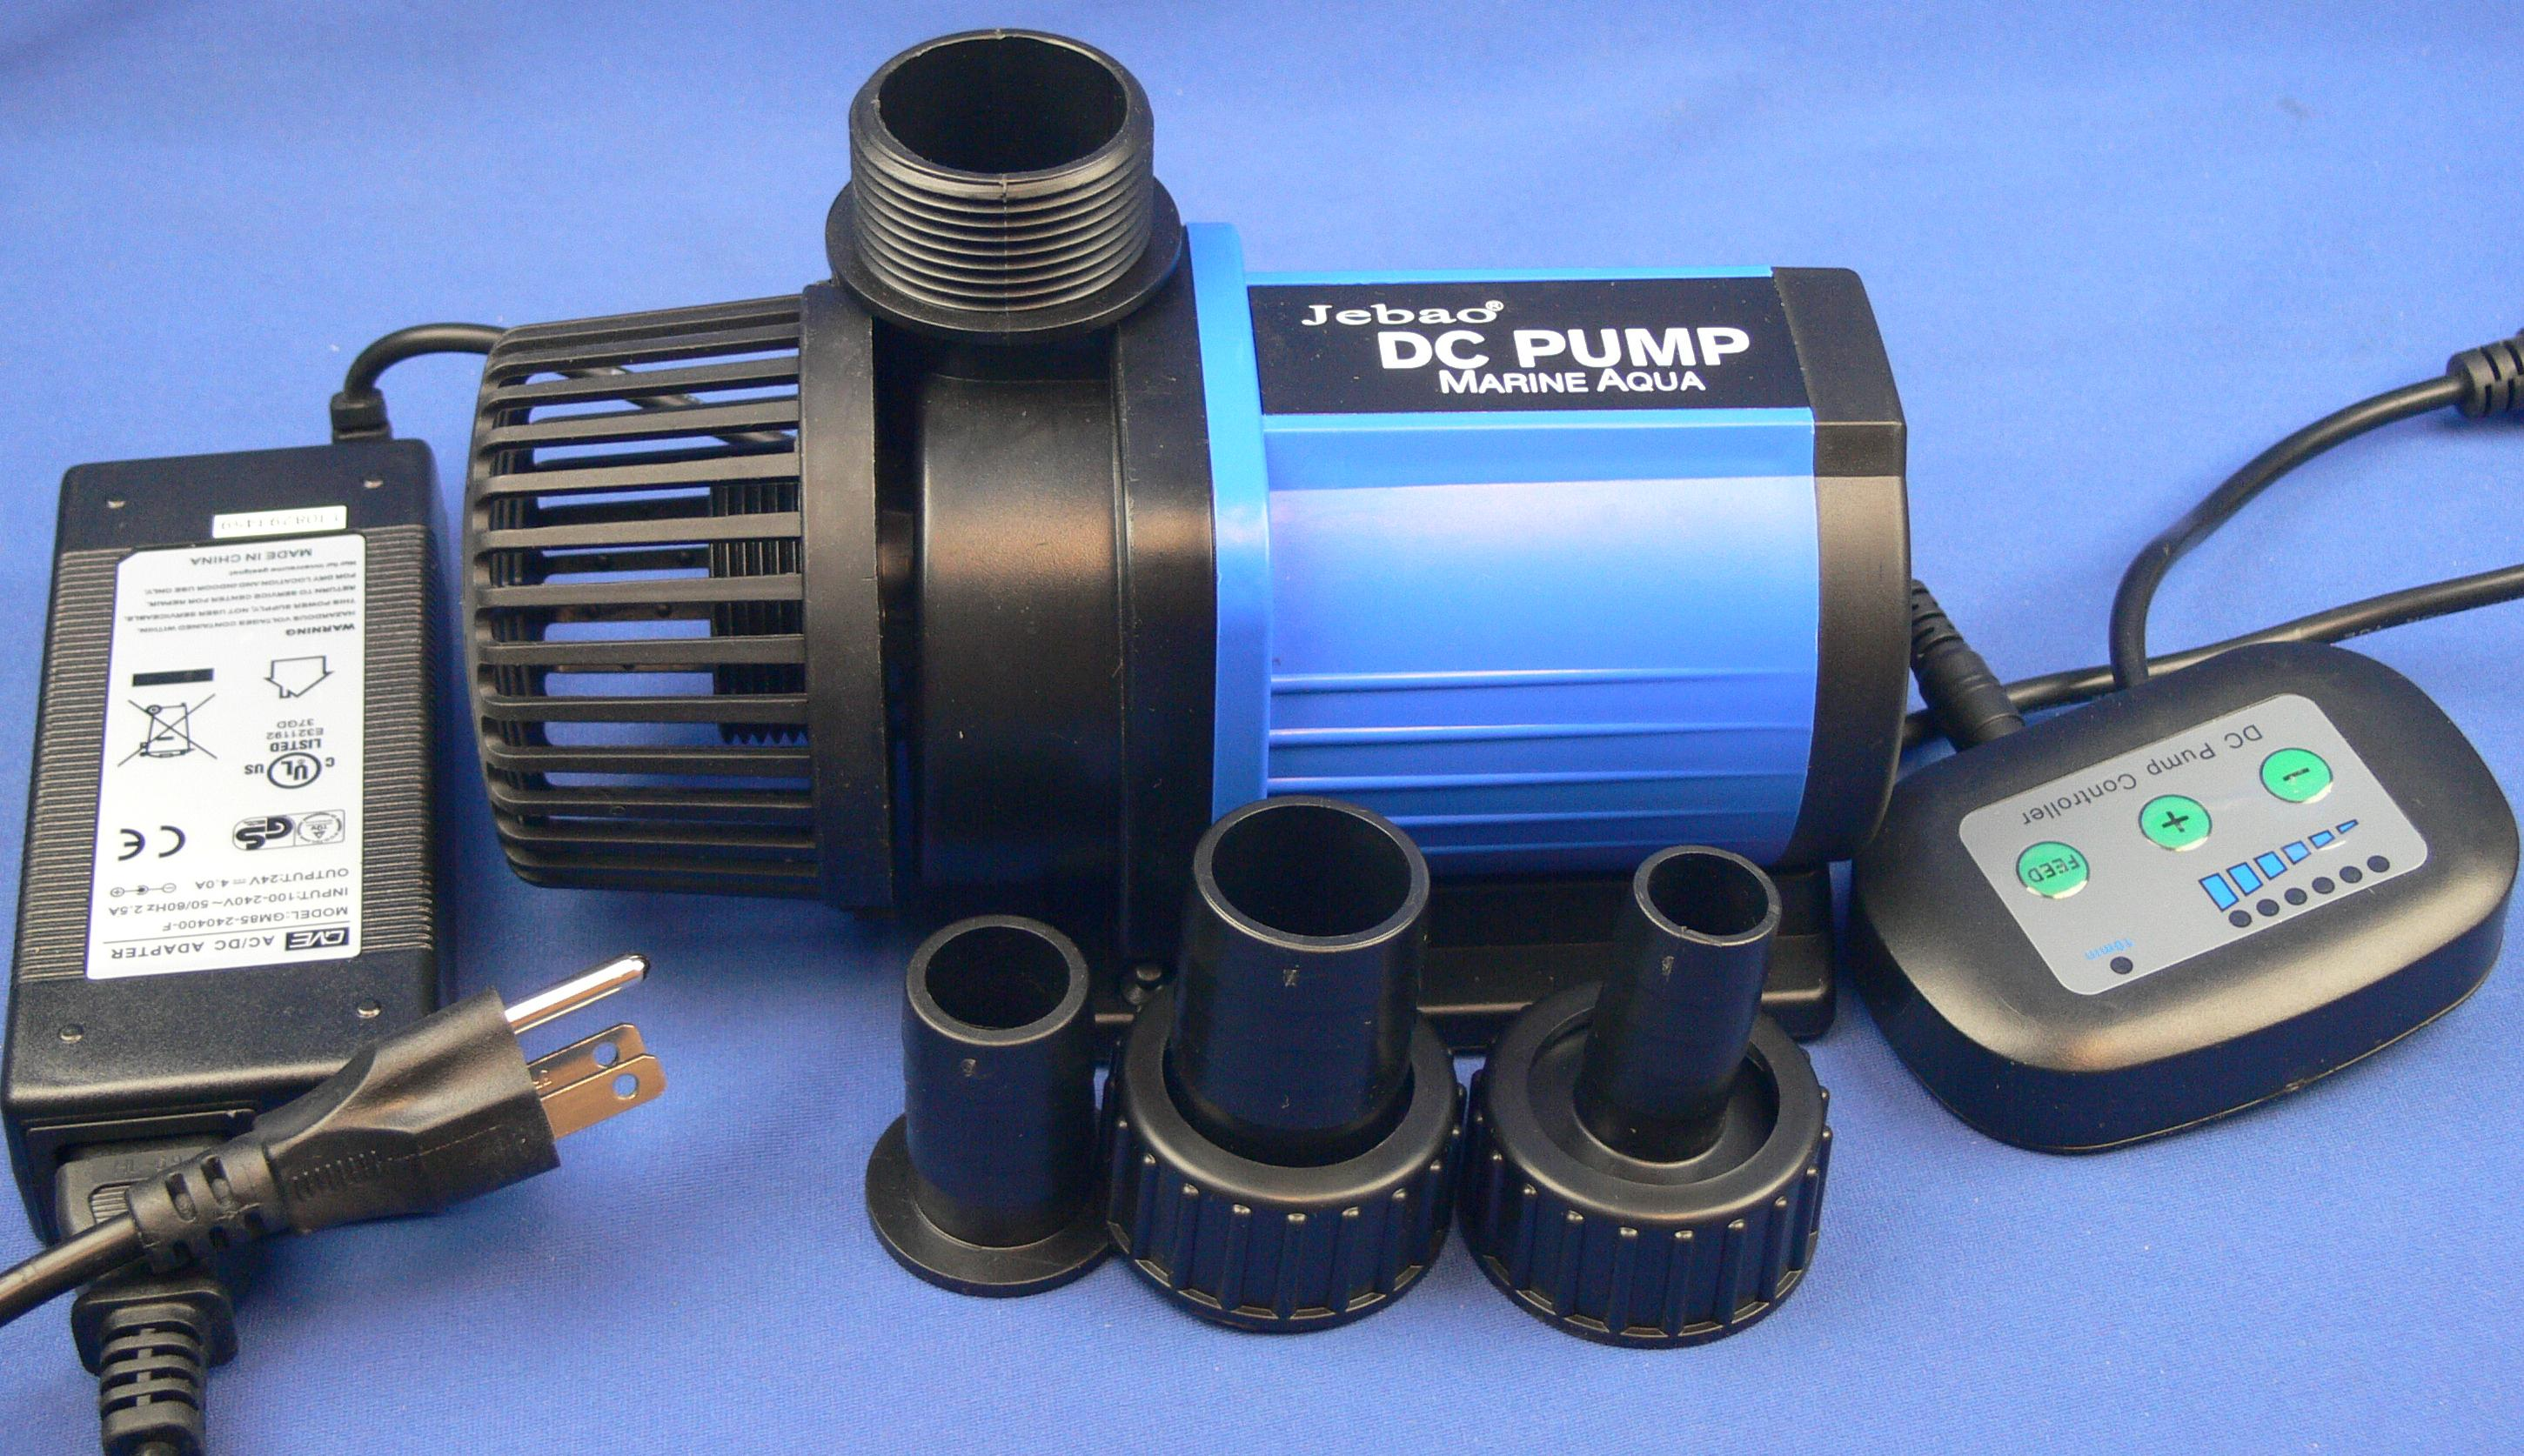 Jebao DC power marine aqua pump